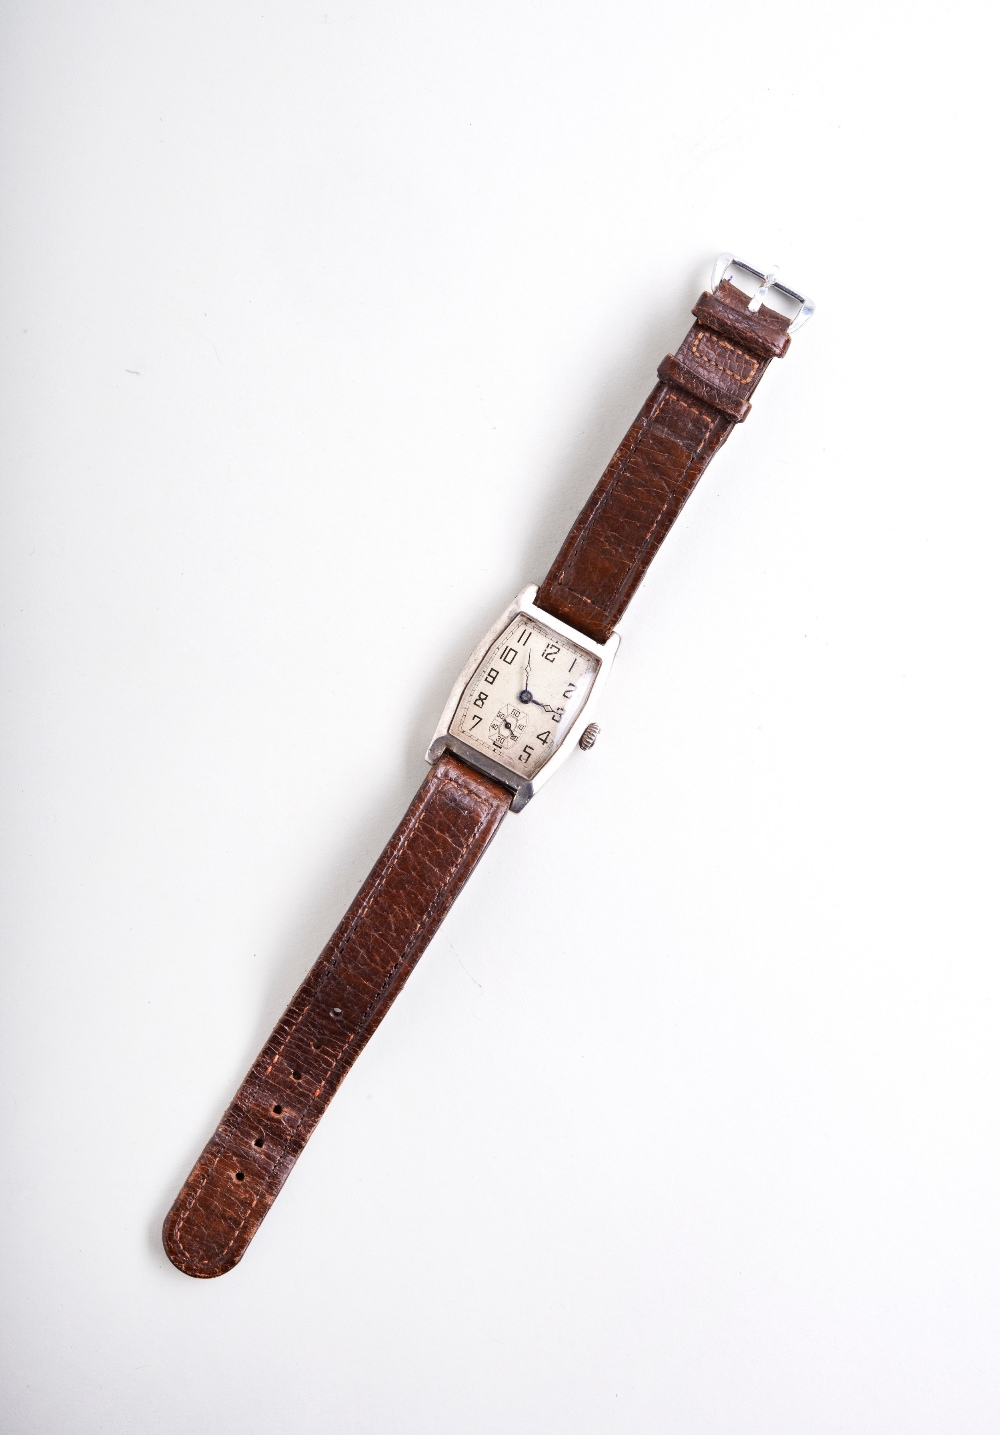 SWISS SILVER TONNEAU SHAPED MANUAL WRISTWATCH, c1915, the ?silver? dial with Arabic numerals, the - Image 2 of 3